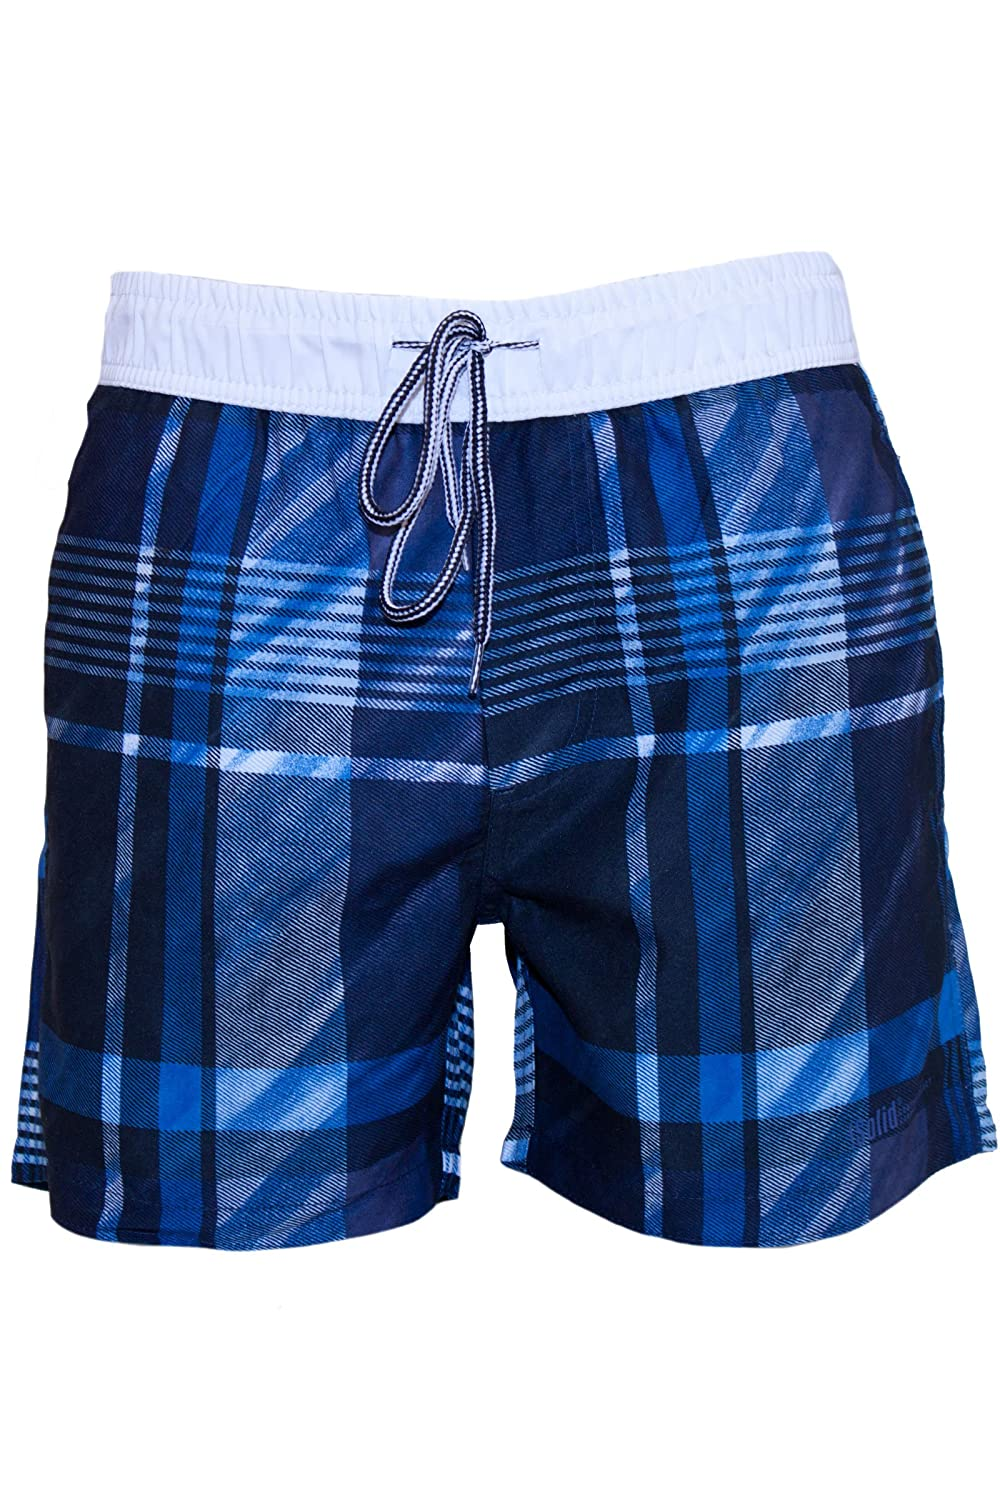 !Solid Men's Swimming Shorts